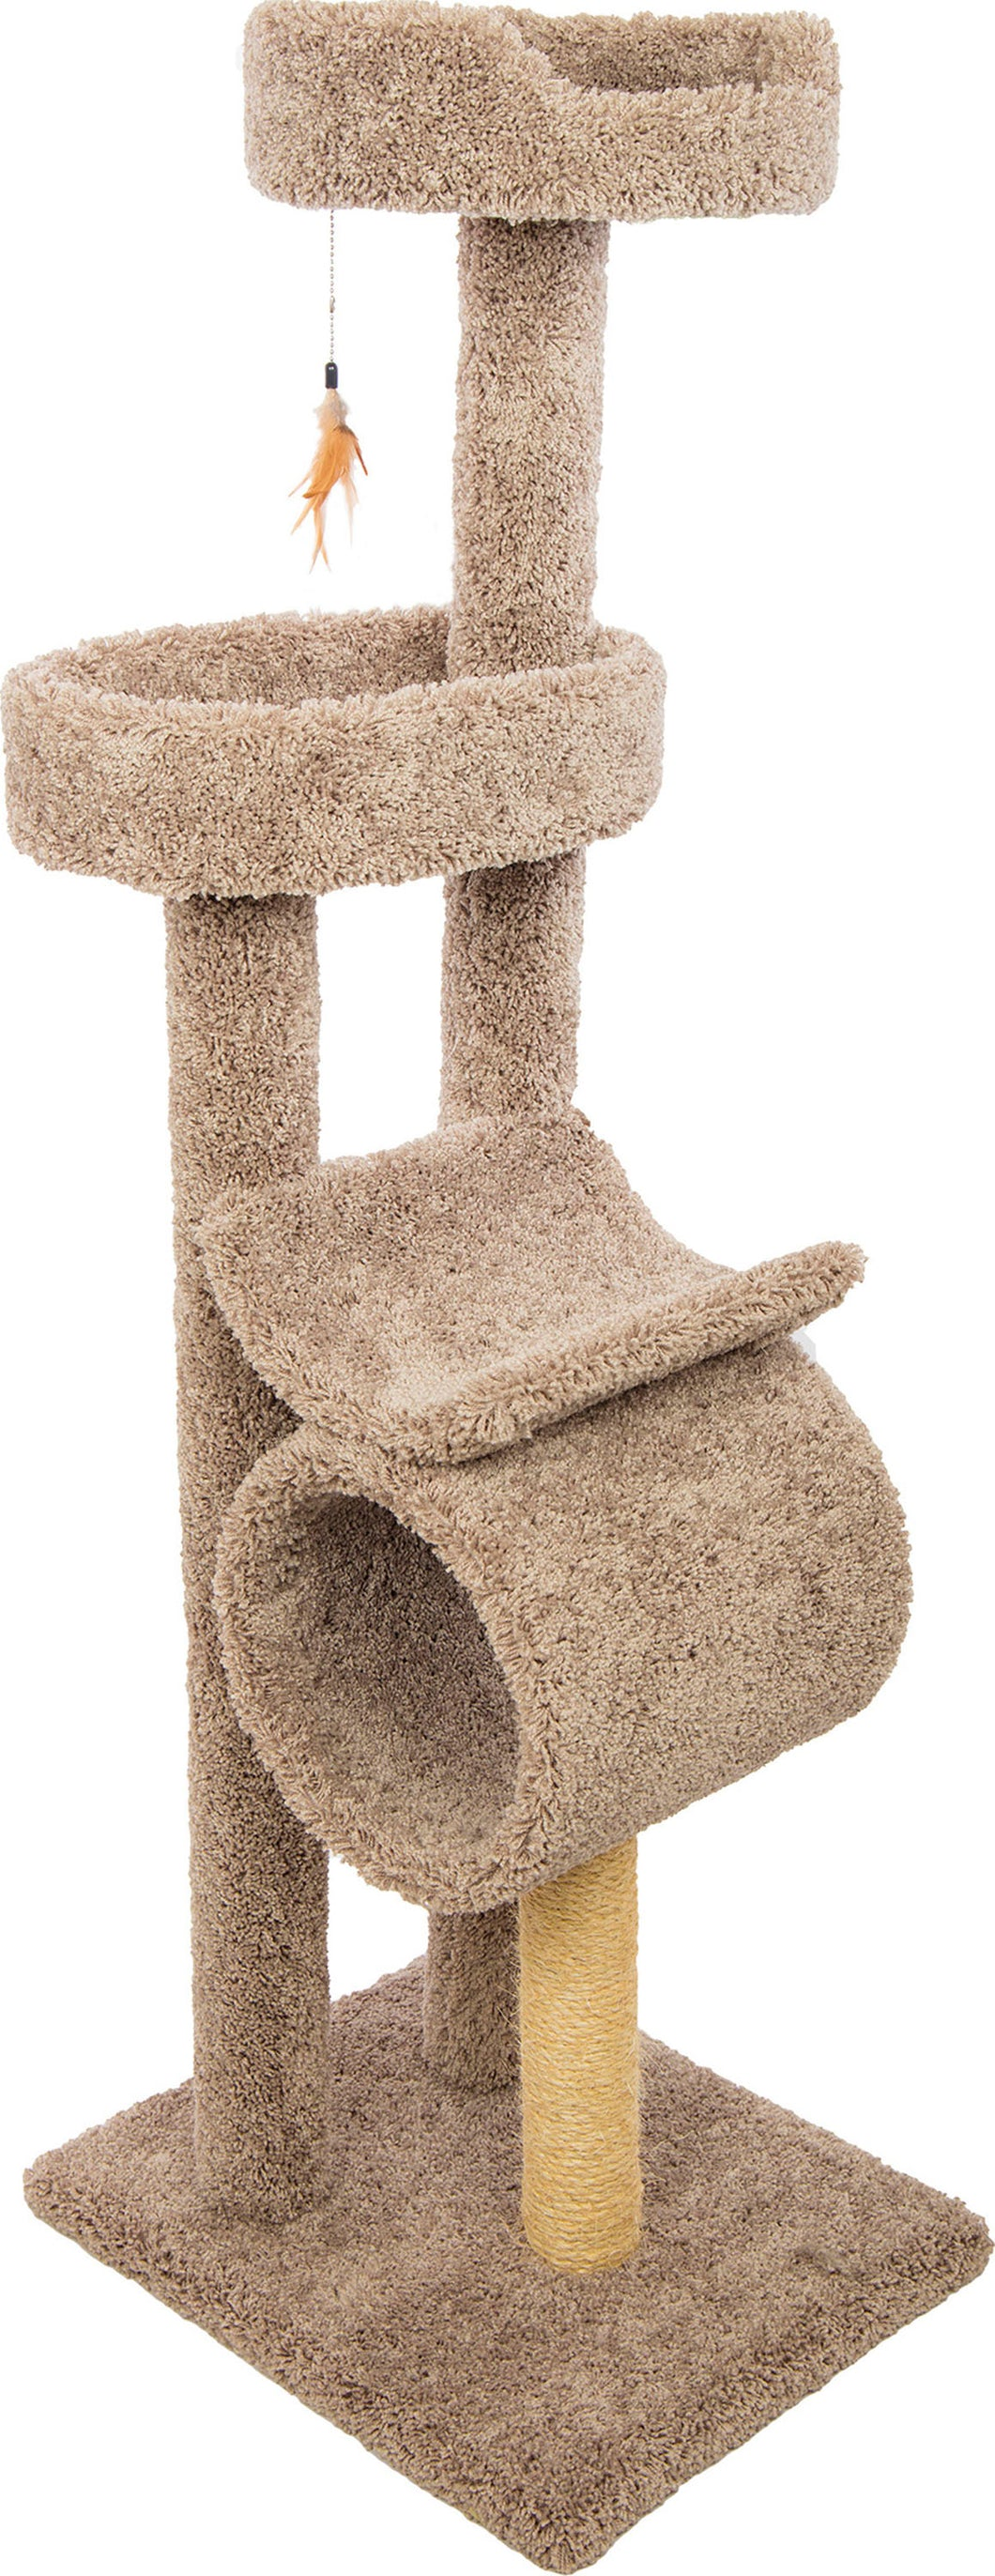 Ware Cat Furniture, Purrfect Penthouse